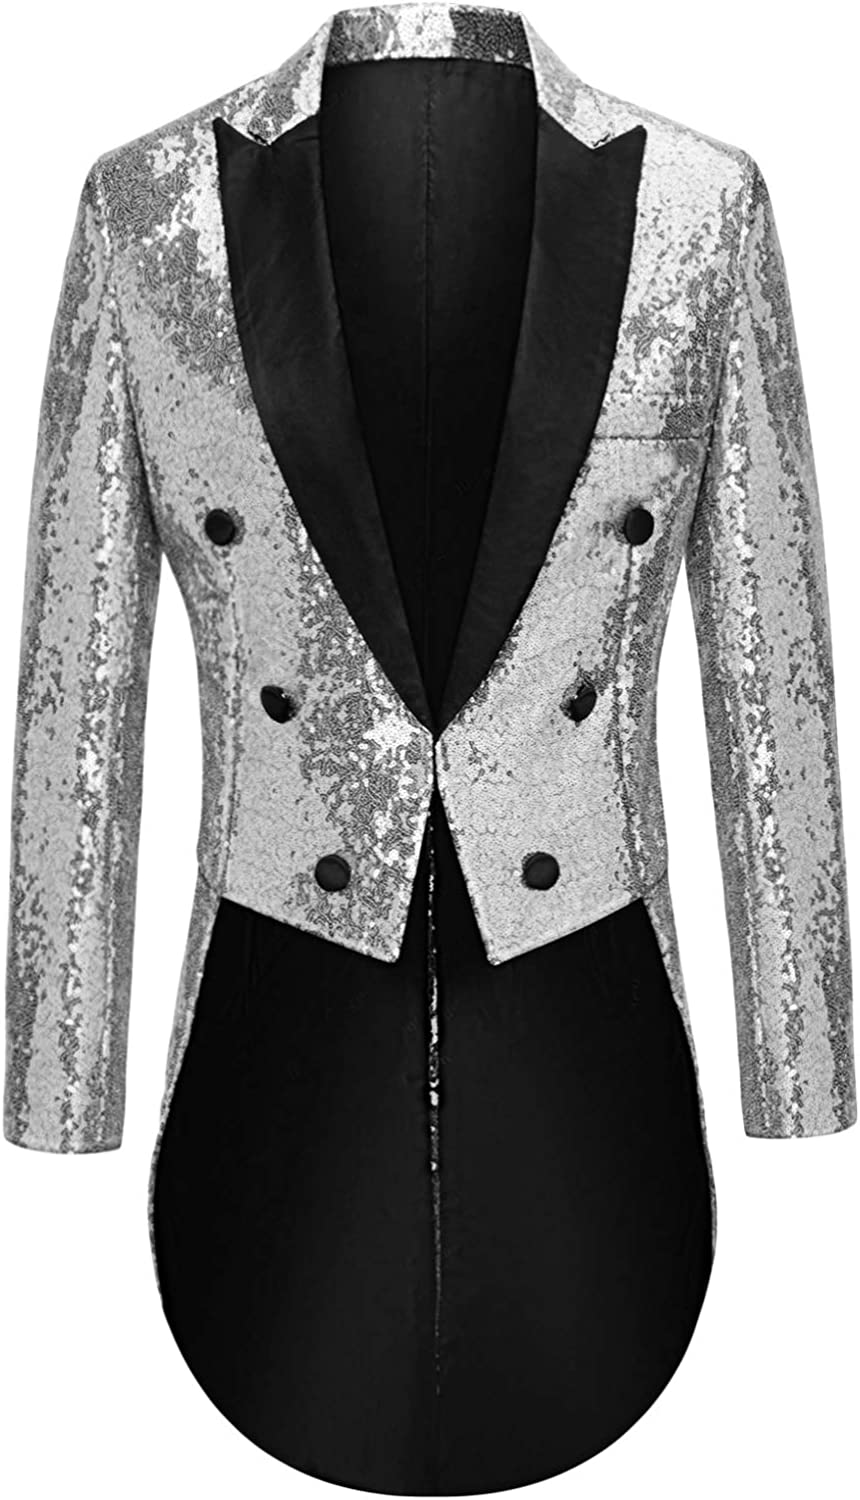 MAGE Max 50% OFF MALE Mens Sequin Tuxedo Jacket Dres Fit Tailcoat Ranking TOP9 Slim Tails